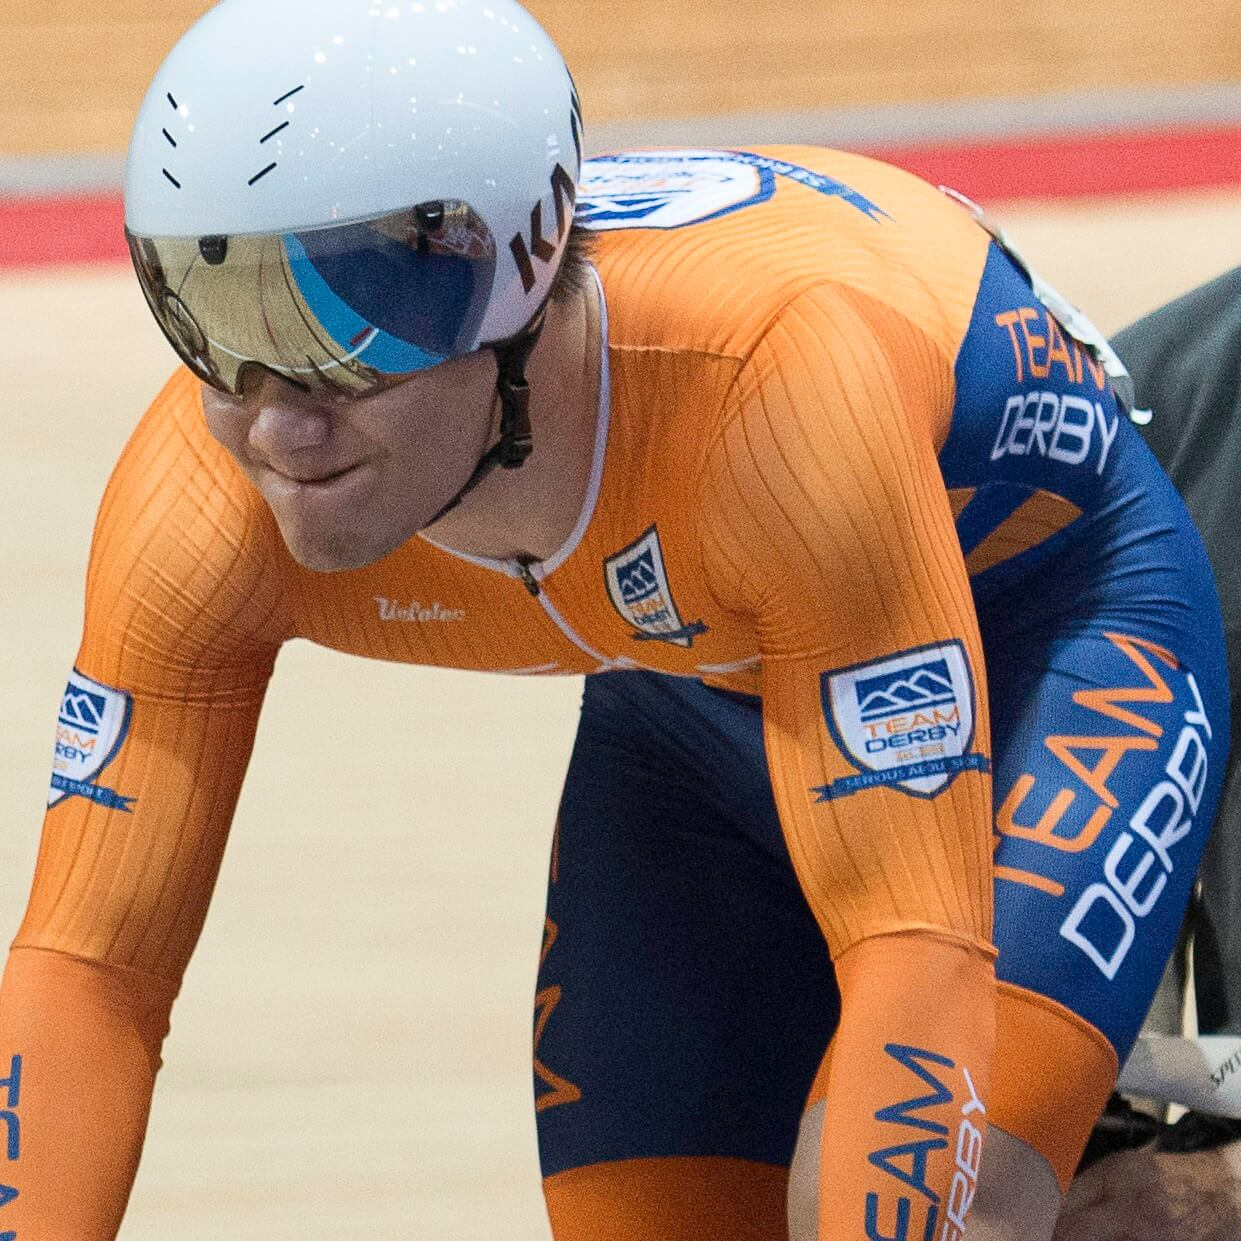 Track cyclist waiting to start race